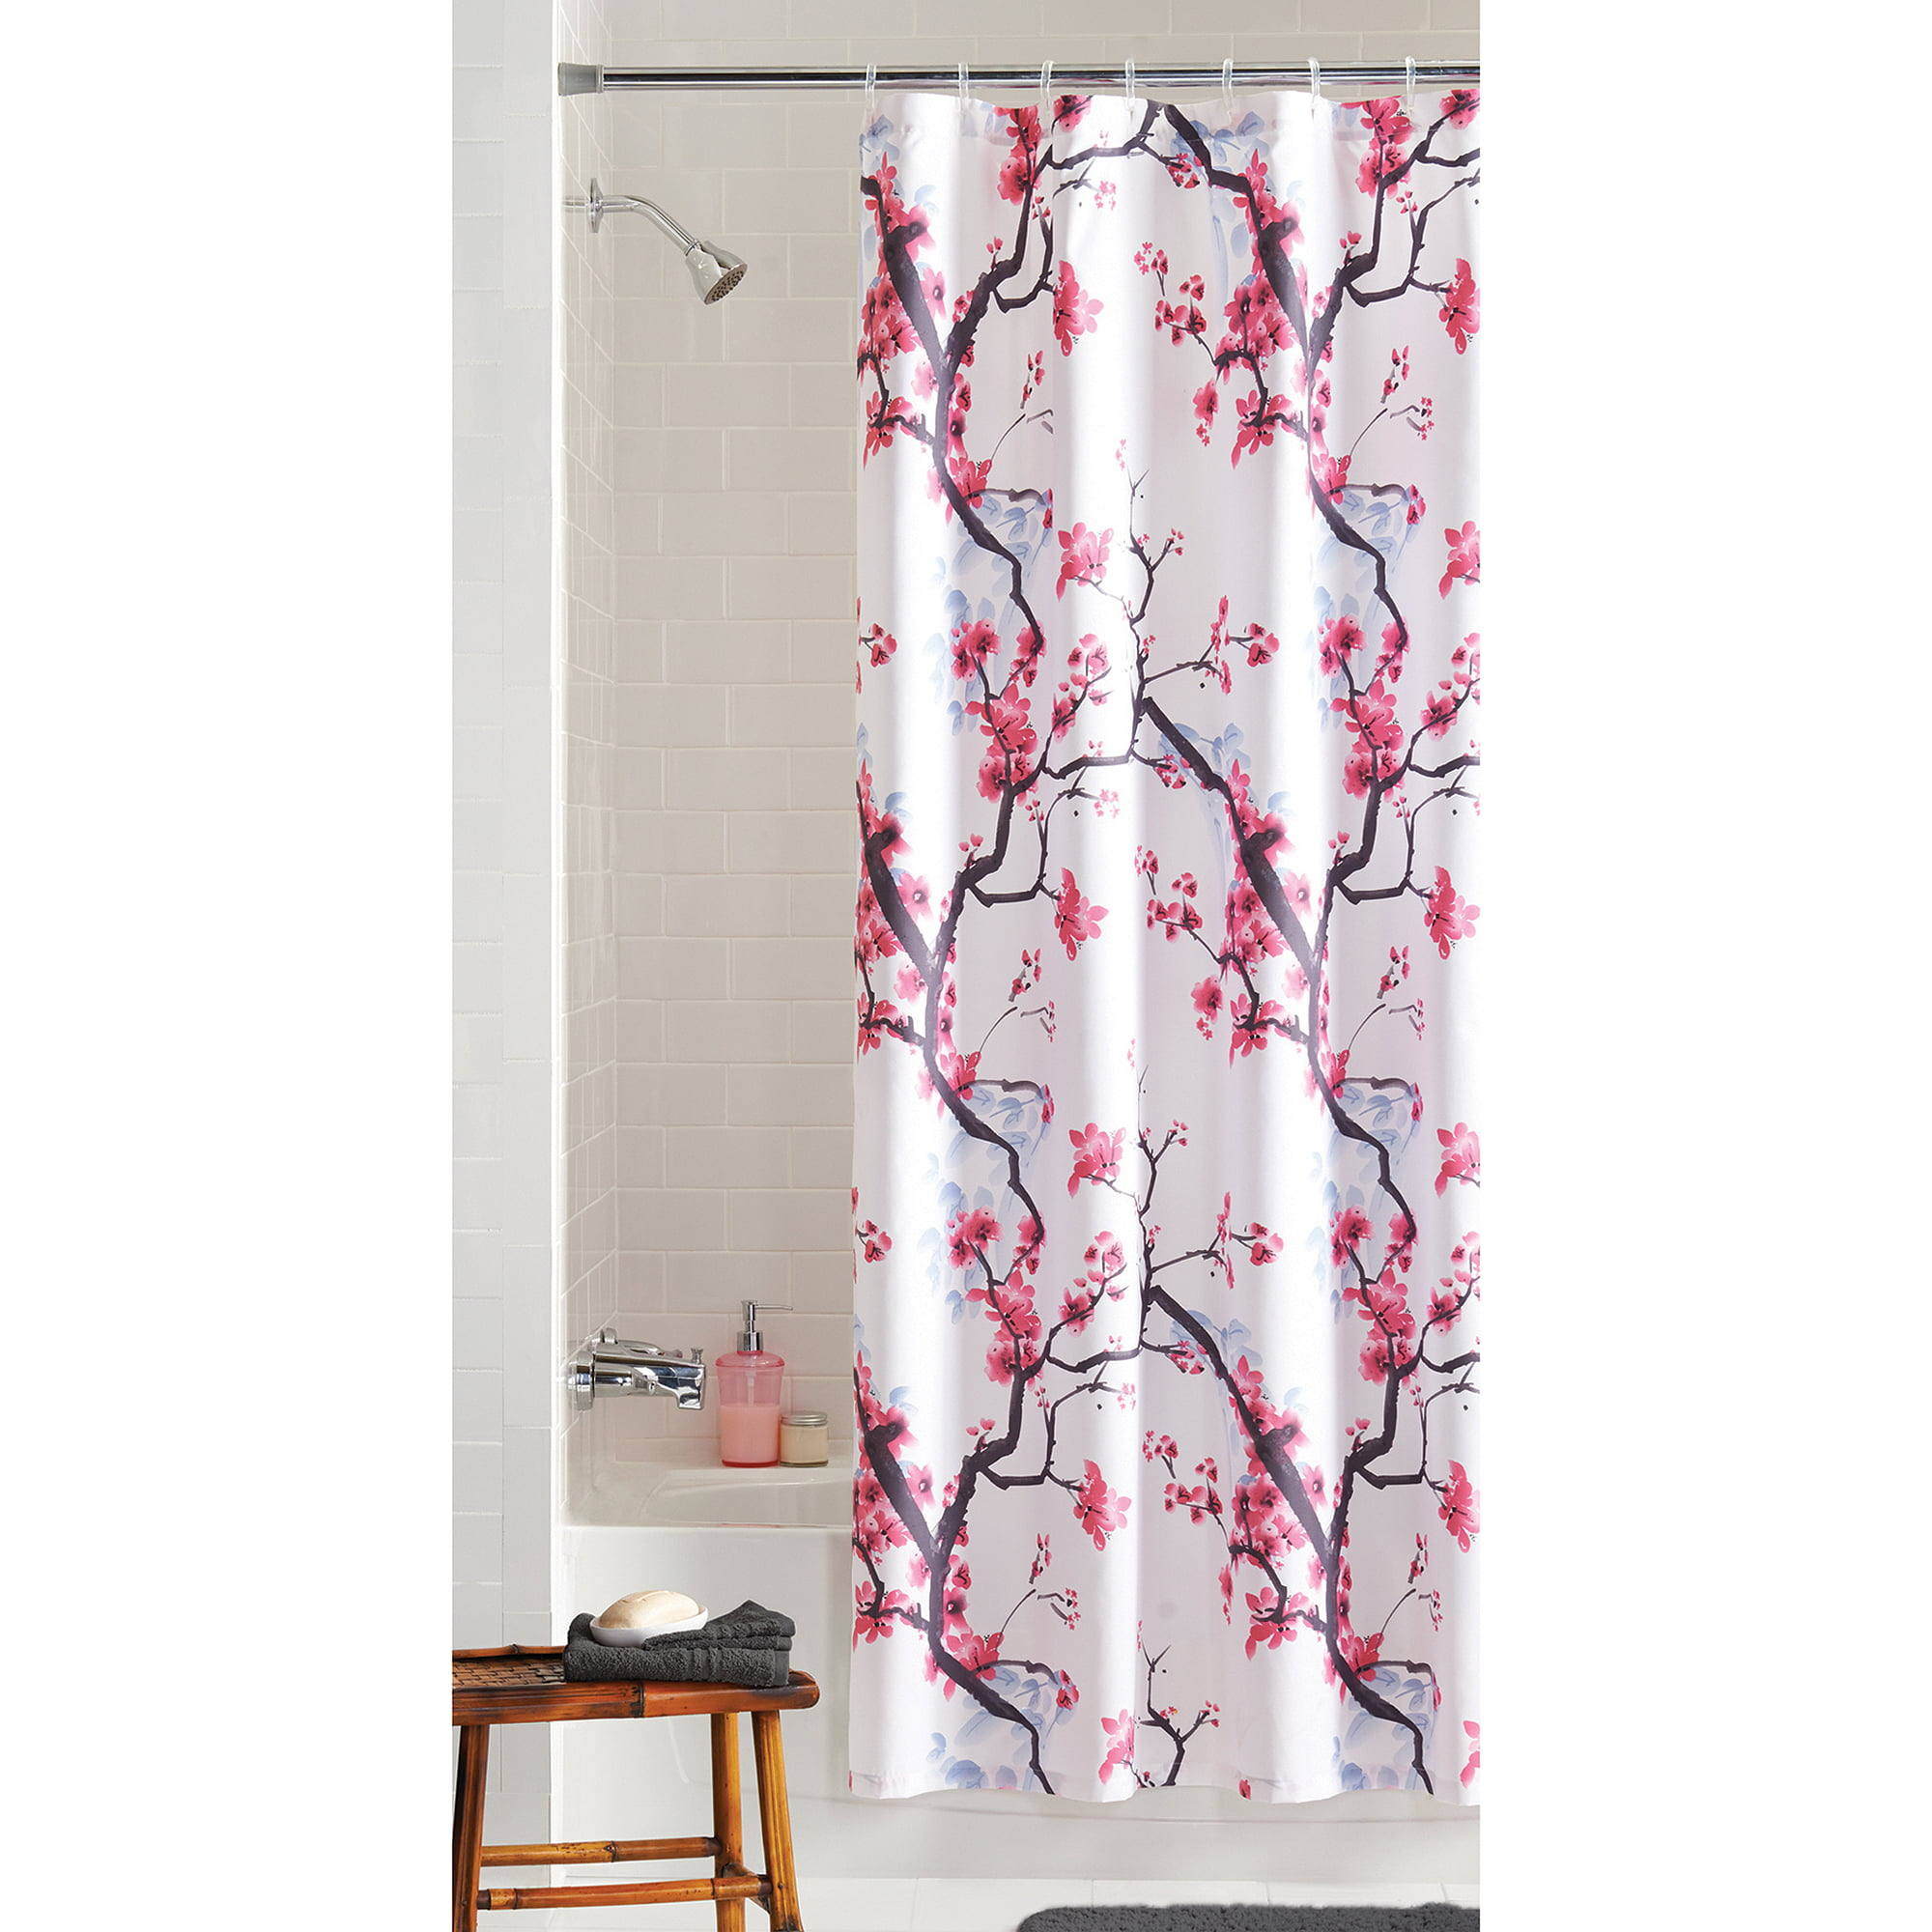 shipping curtain on orders bird birds bath overstock bedding lush over product free shower rowley decor curtains